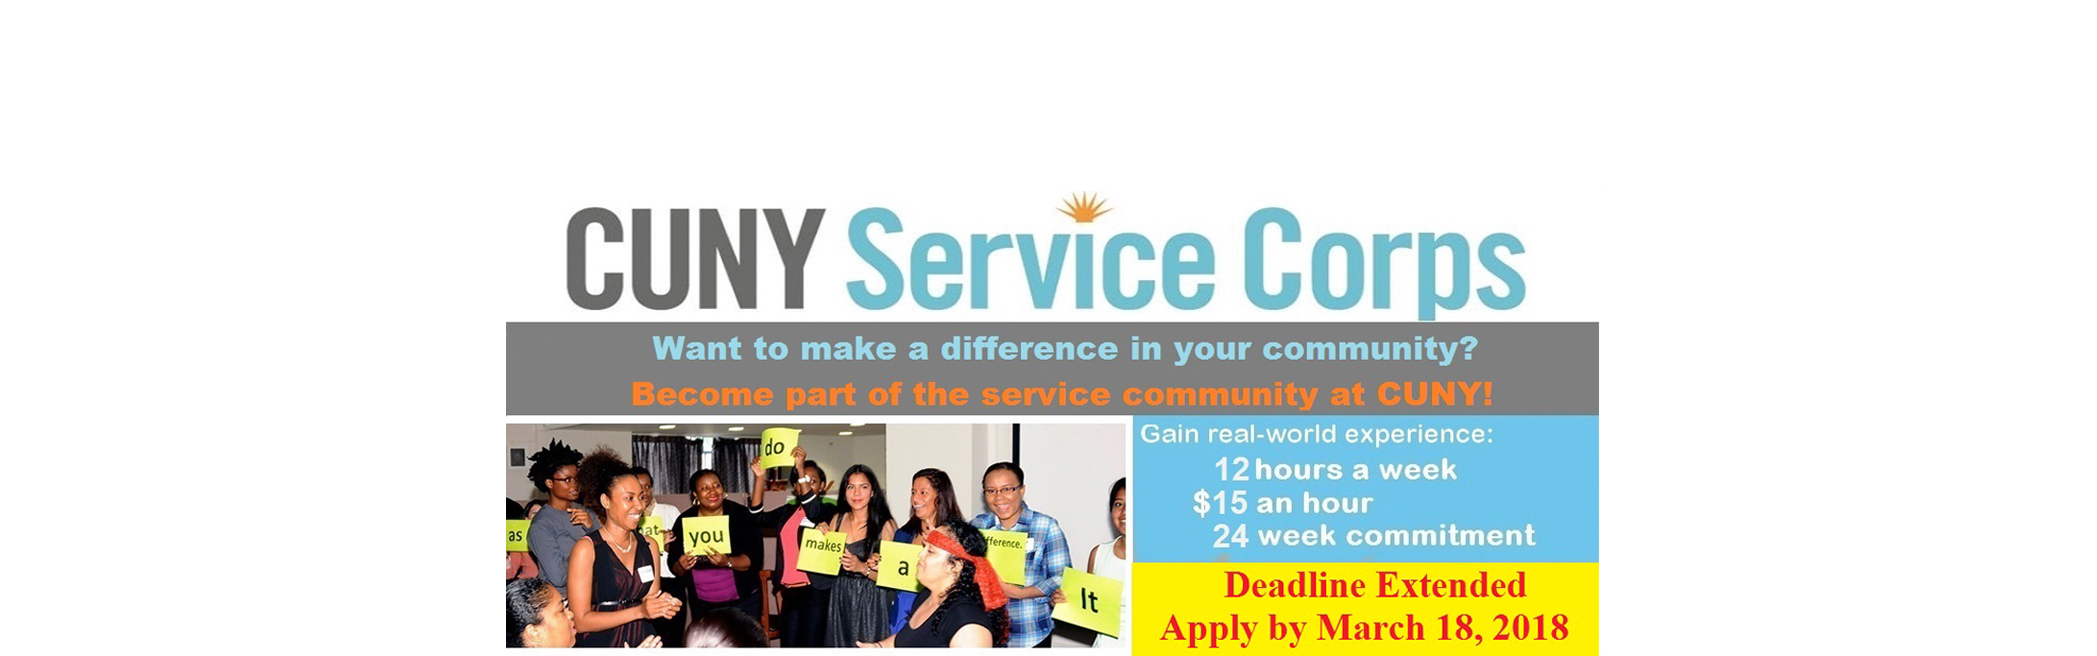 CUNY Service Corps - Want to make a difference in your community? Become part of the service community at CUNY! - Gain real-world experience working 12 hours per week - 15$ an hour. 24 week commitment - Apply Online Now! Priority Deadline: 02/16/18 - Final Deadline: 03/11/18